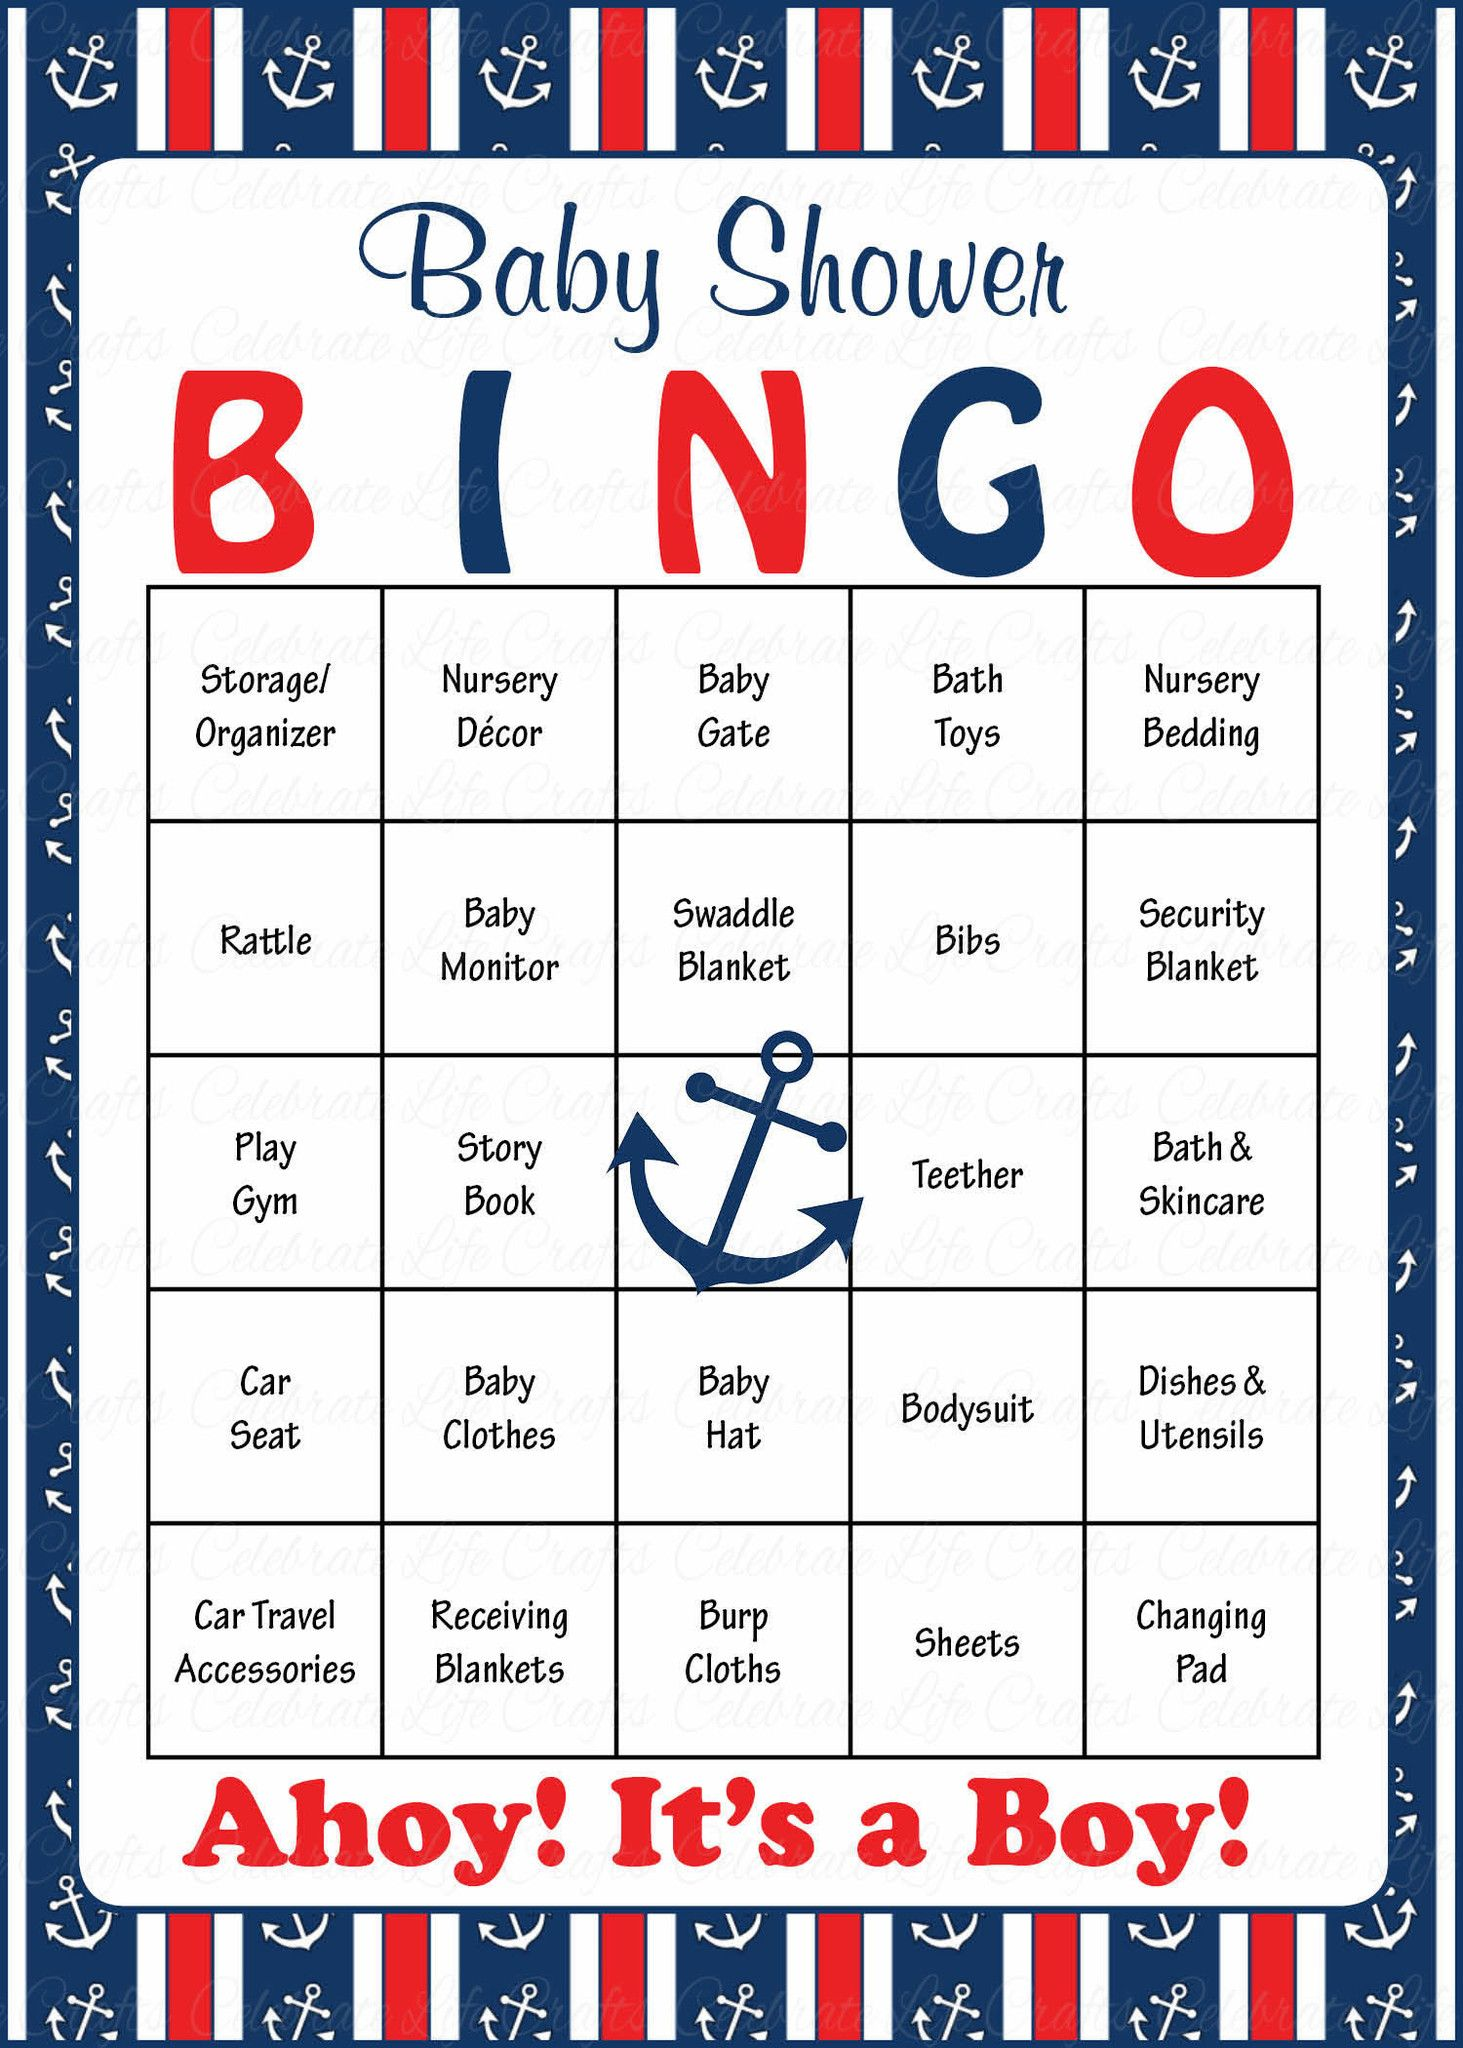 Juicy image intended for free printable nautical baby shower games